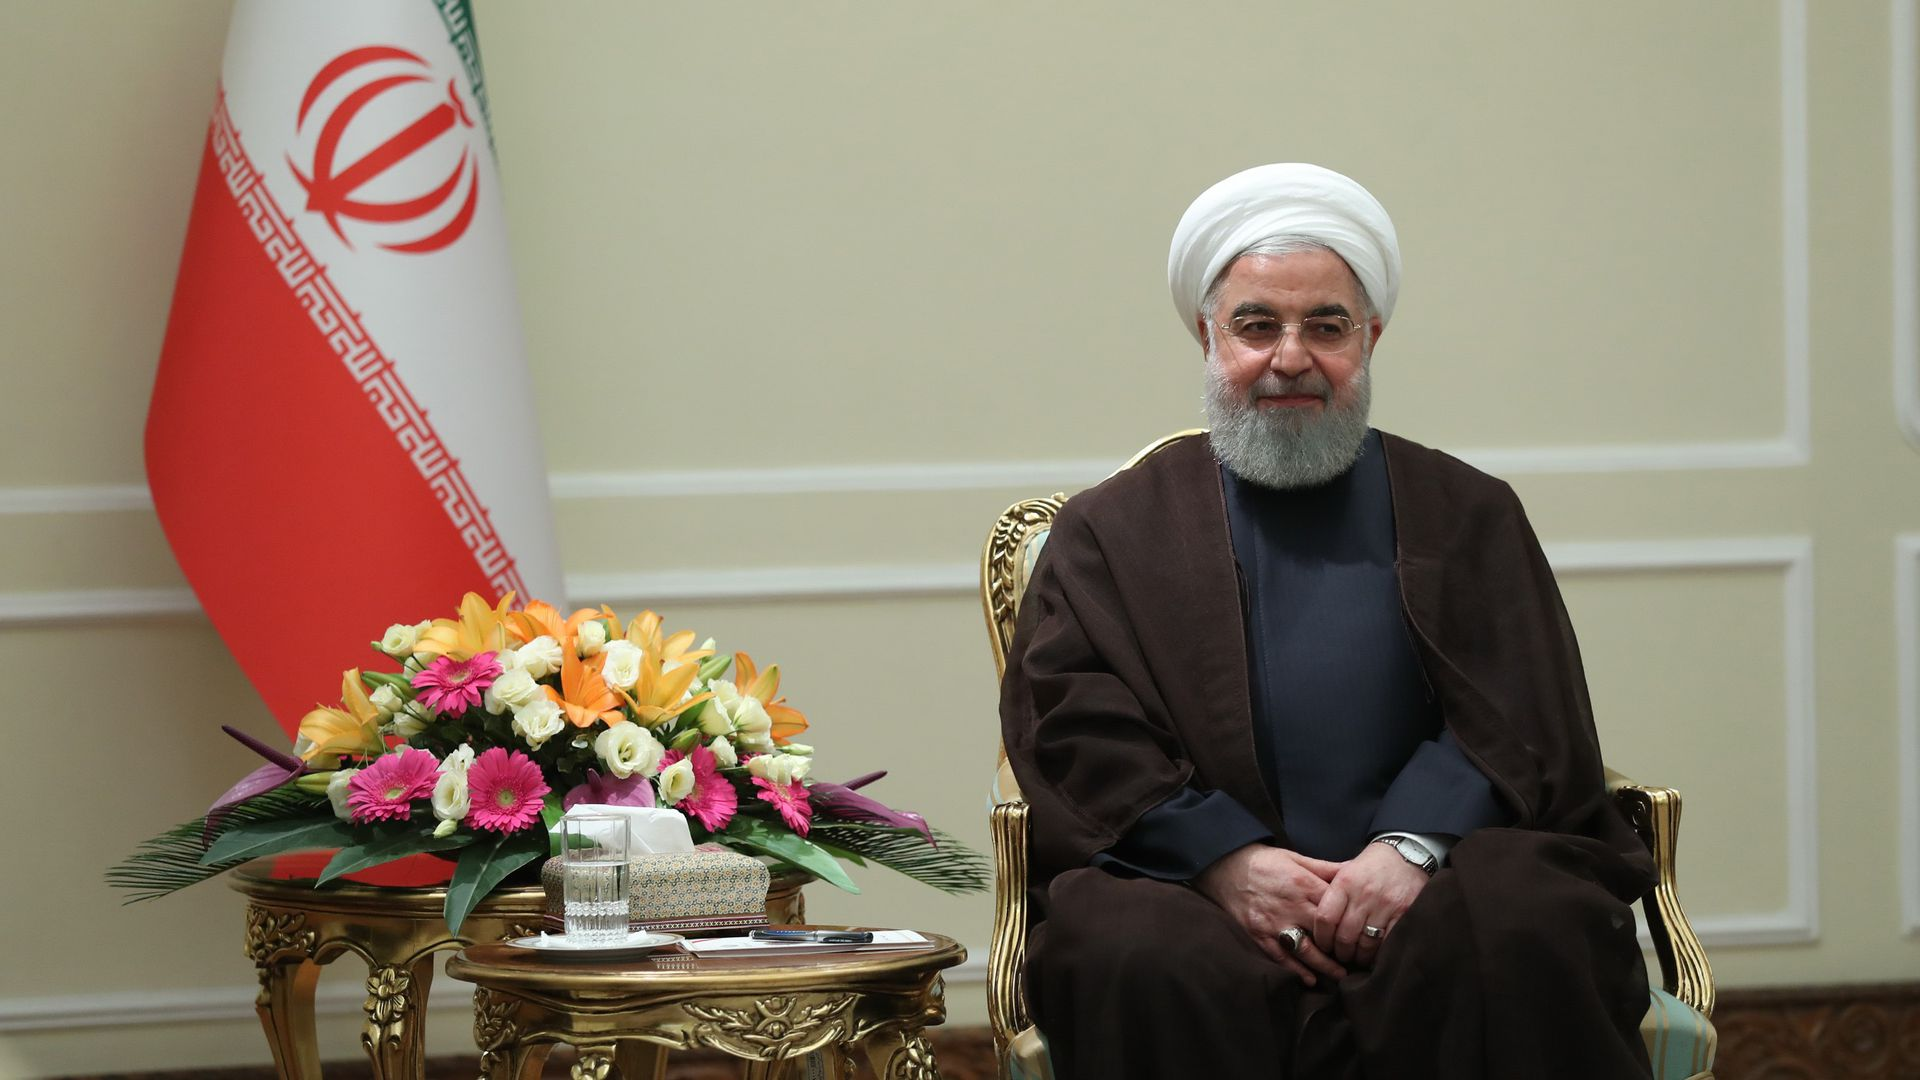 Hassan Rouhani seated in a chair